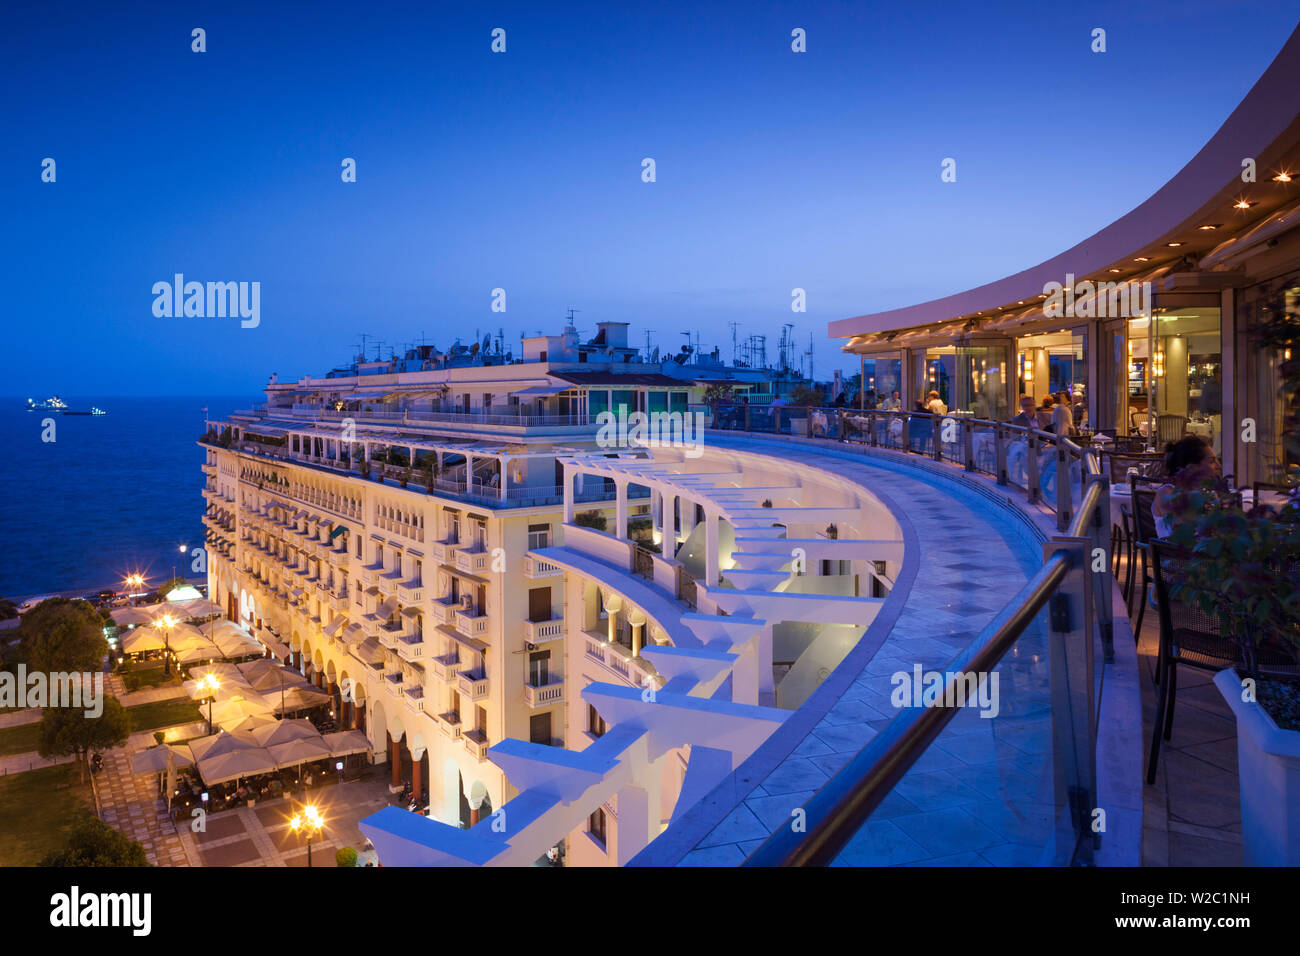 Greece, Central Macedonia Region, Thessaloniki, Aristotelous Square, buildlings, elevated view - Stock Image